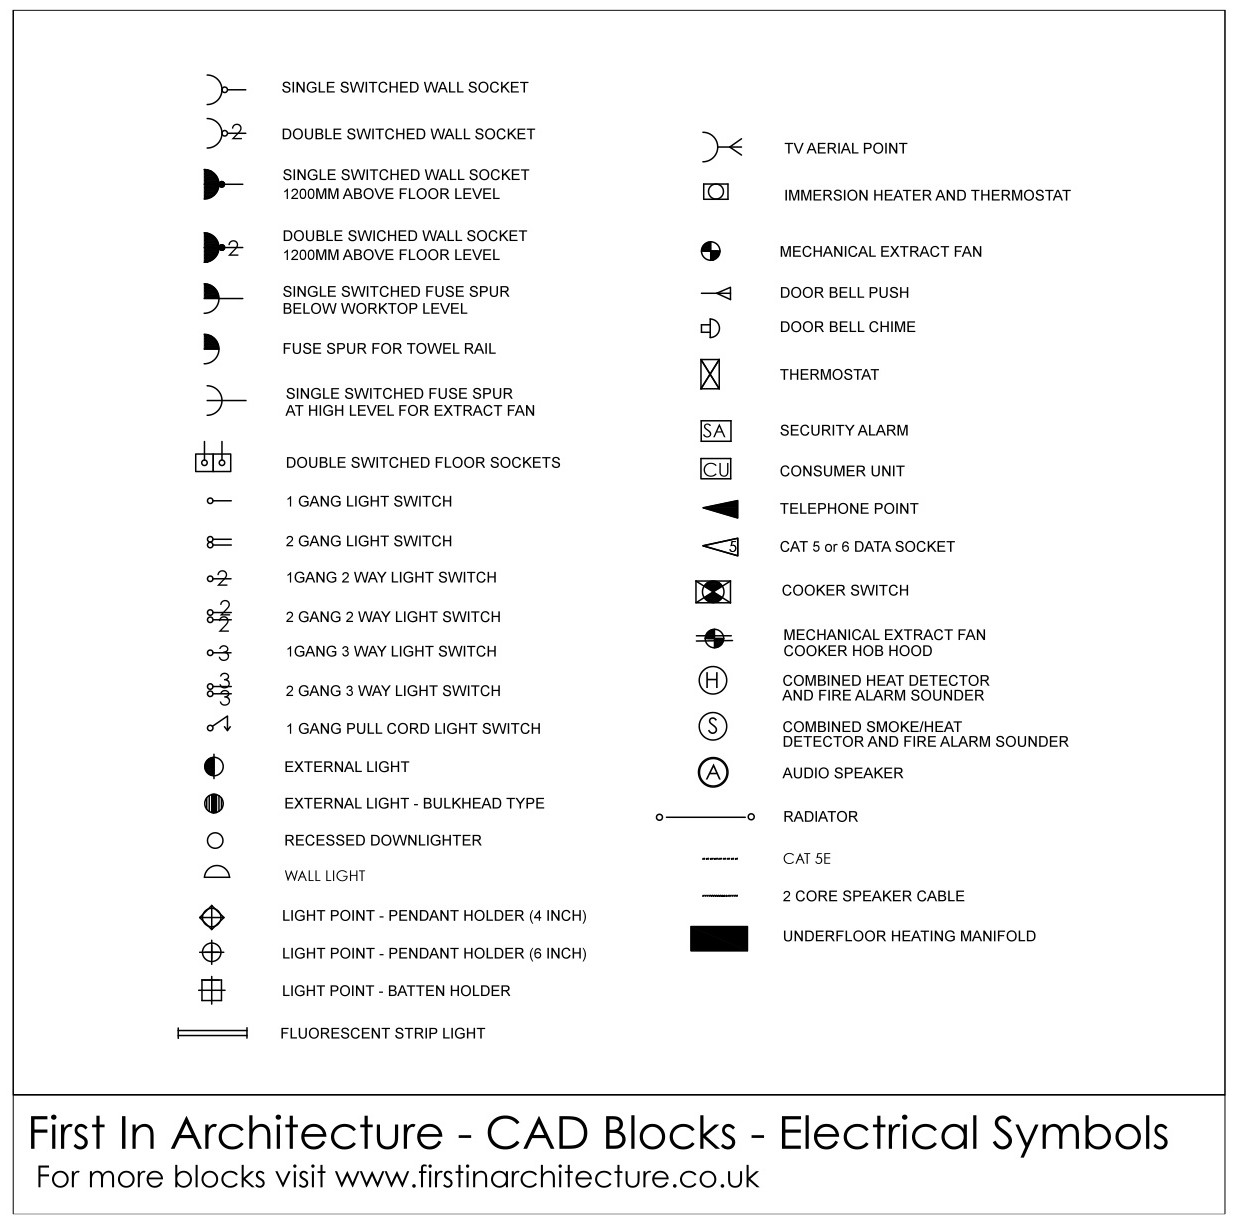 cad blocks electrical symbols first in architecture now